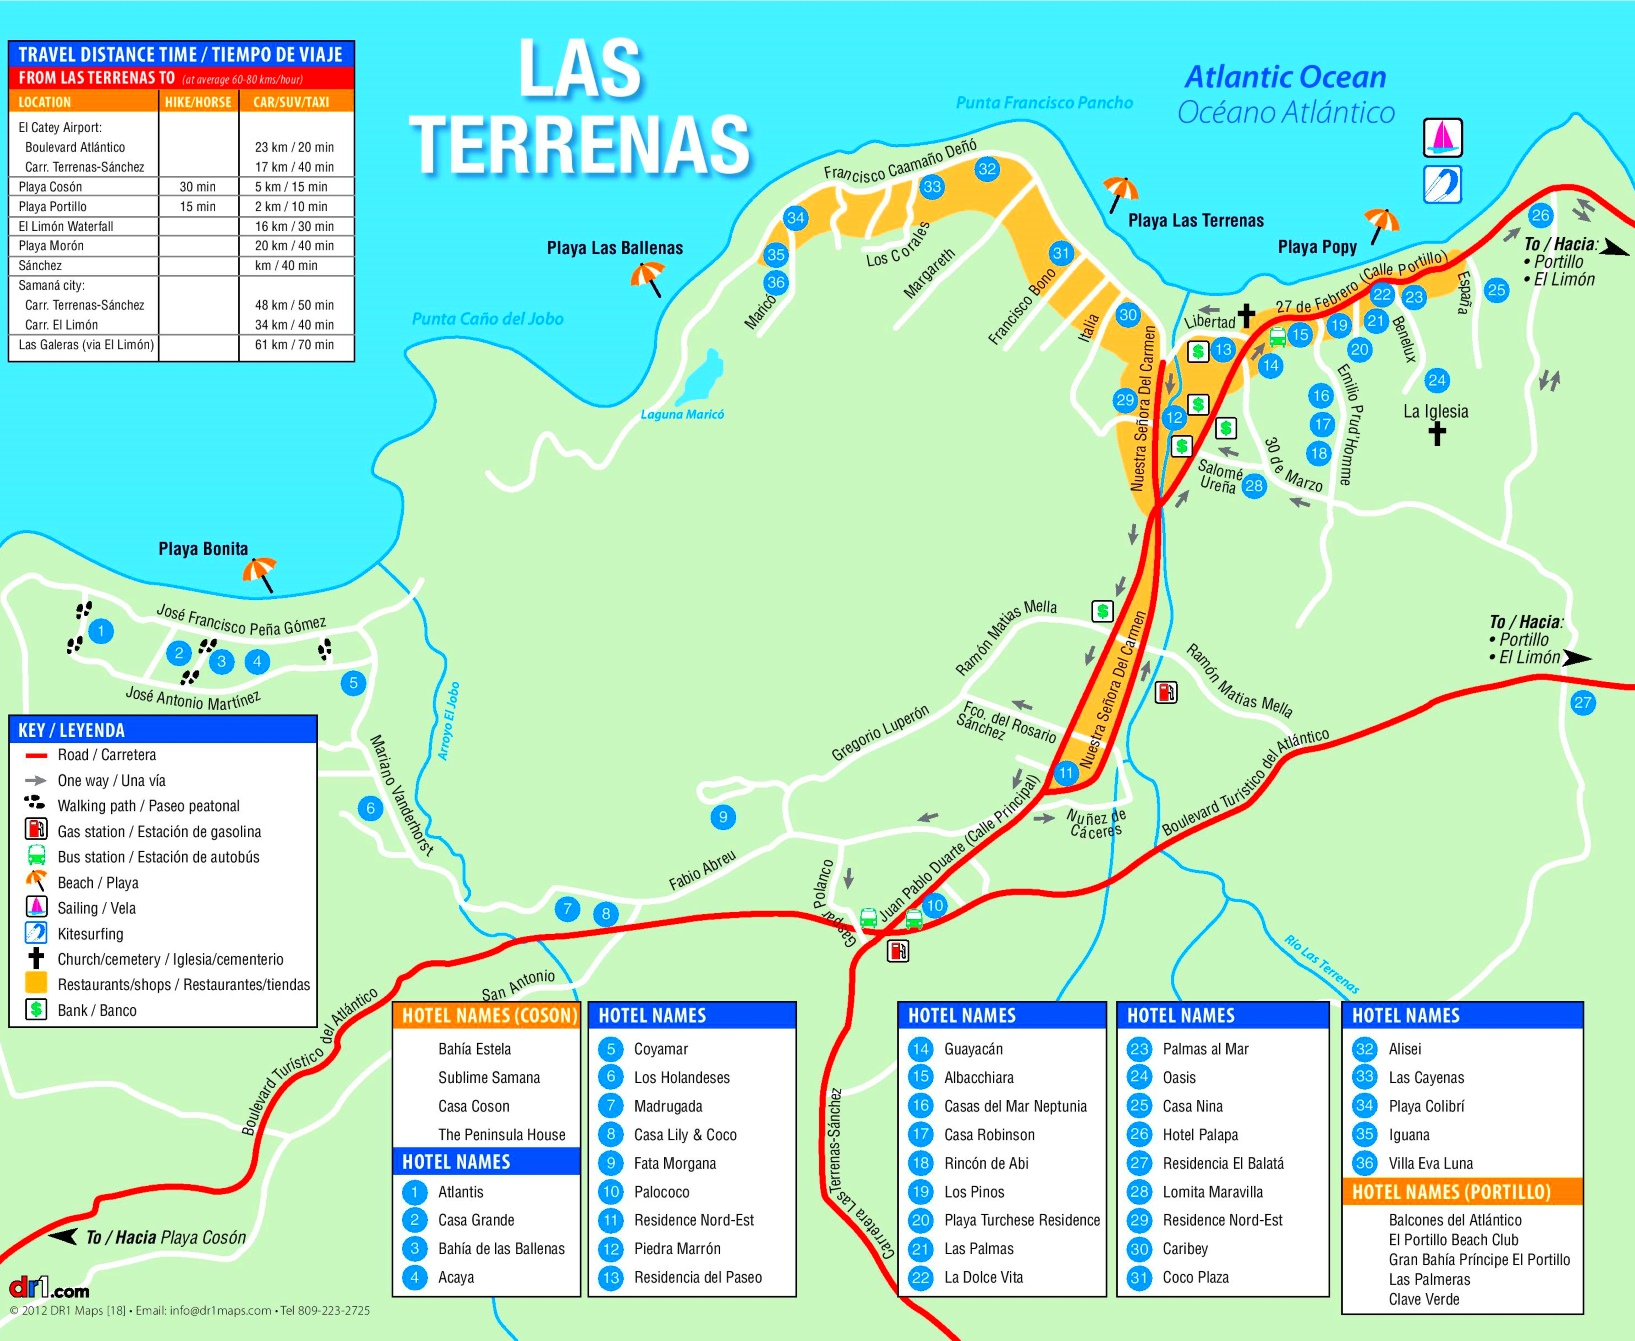 Las Terrenas hotel map